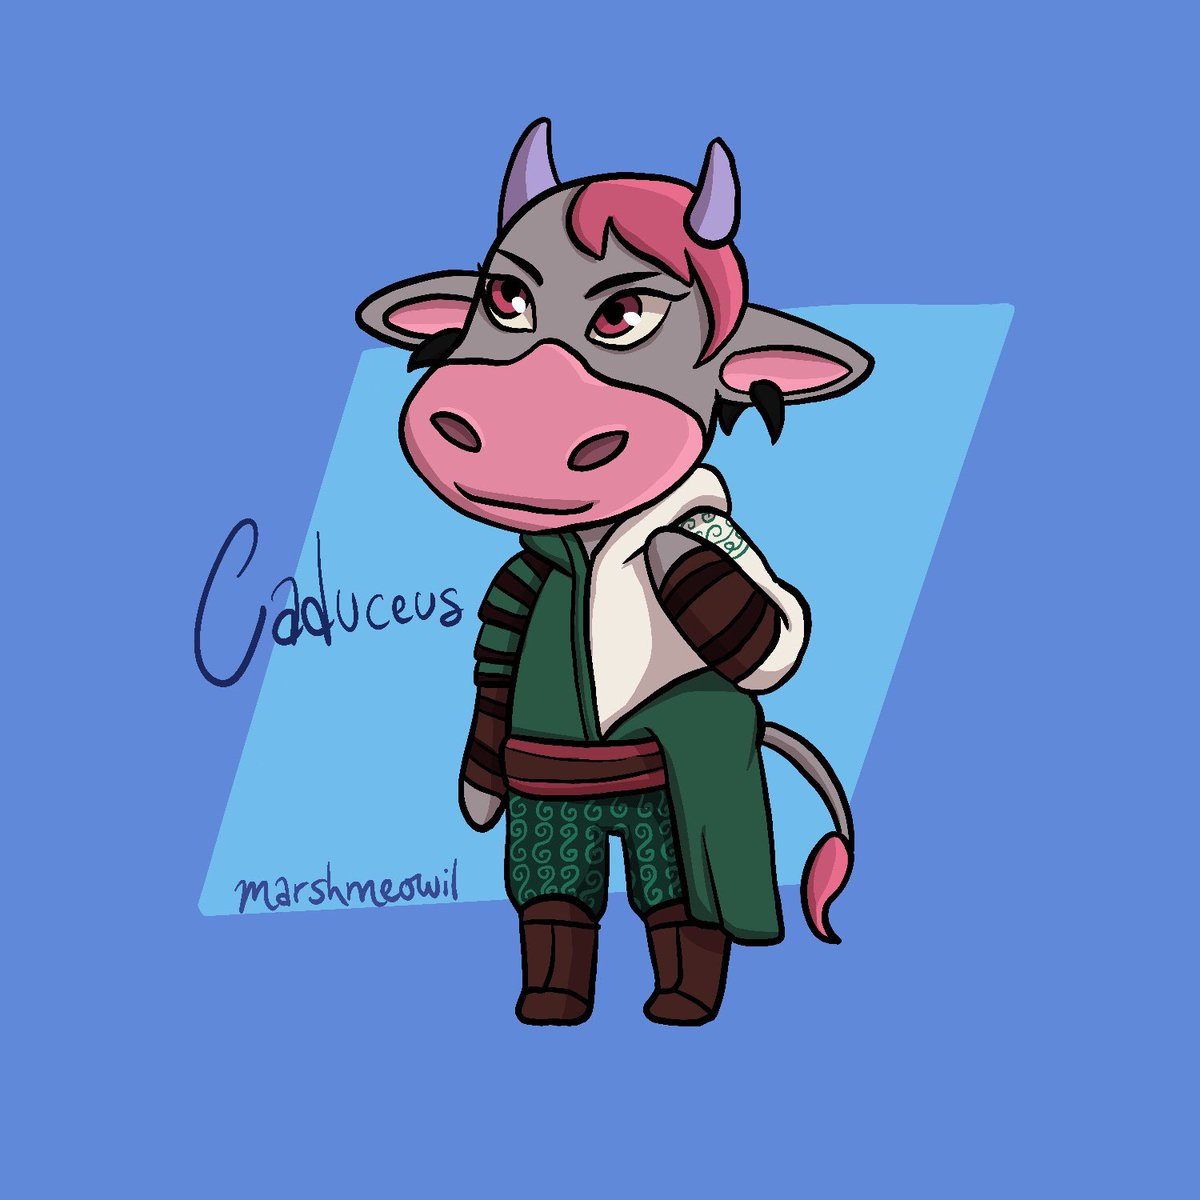 Caduceus the Cow Critical Role characters as Animal Crossing characters series. #procreate #criticalrole #criticalrolefanart #criticalrolecaduceus #crcaduceus #animalcrossing #animalcrossingnewhorizons #acnh #animalcrossingfanart #dnd #dungeonsanddragonsart #dungeonsanddragons https://t.co/hzA6M8qFA5